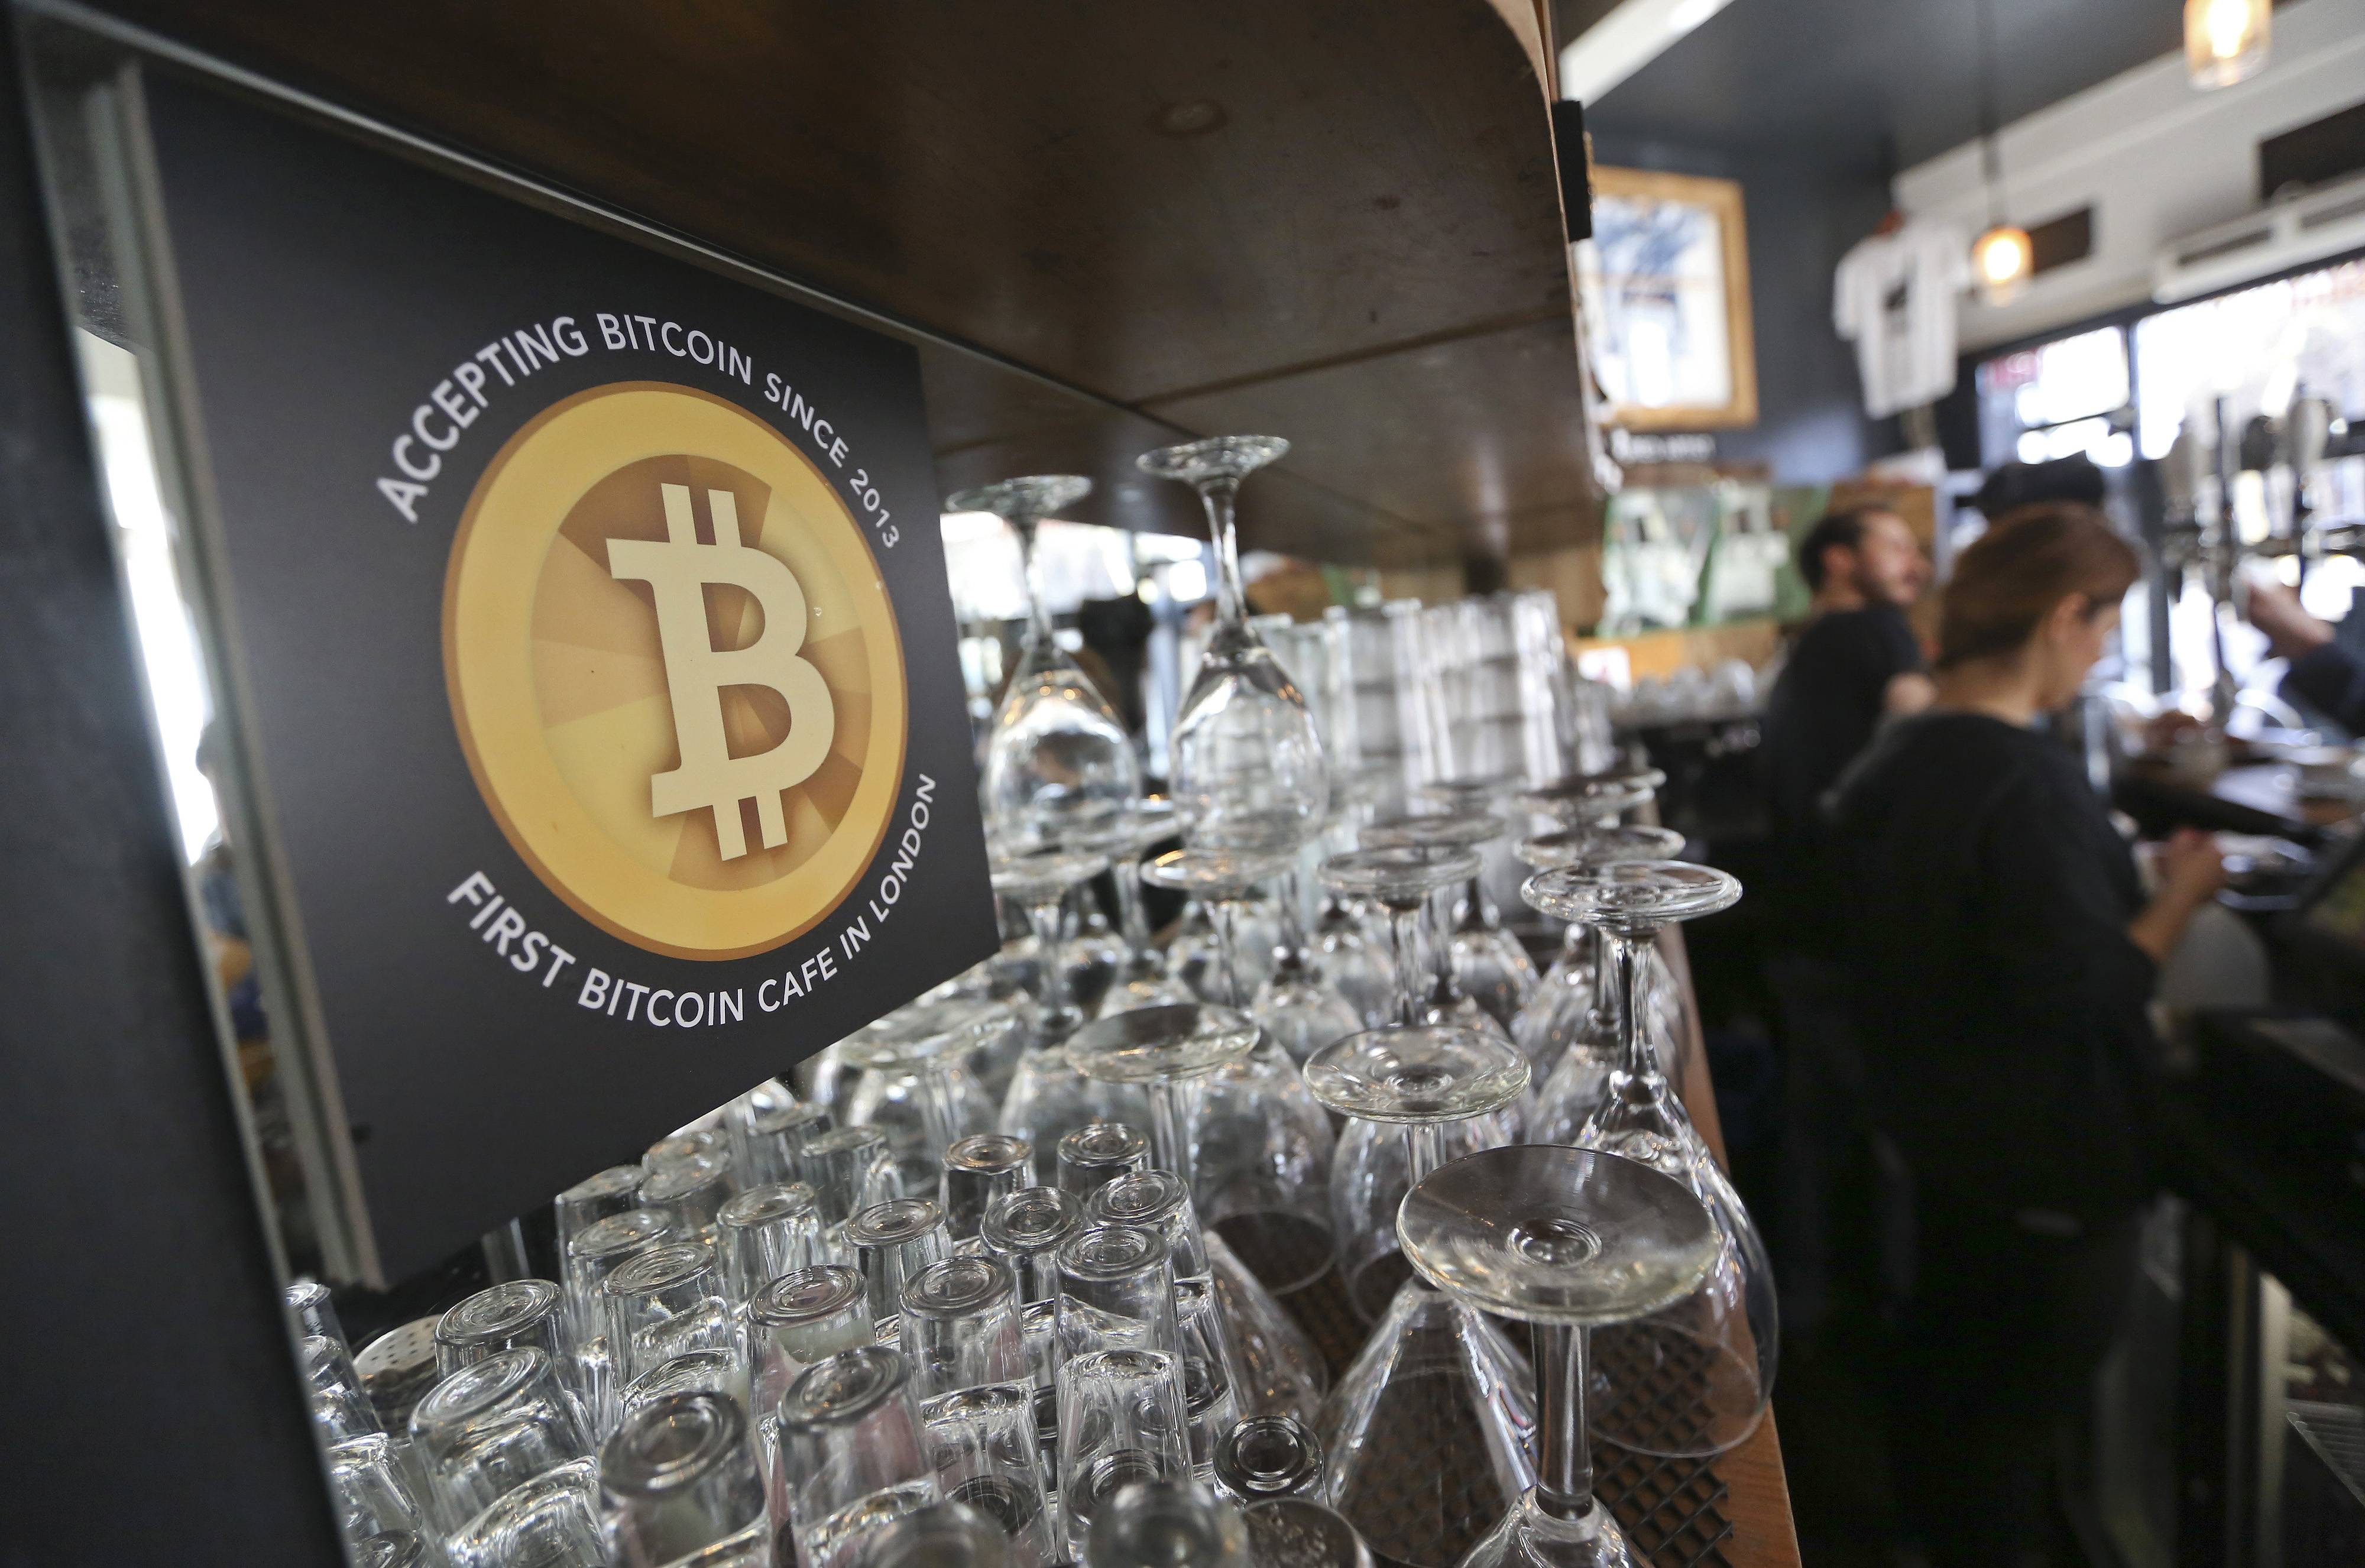 A poster alerting customers that the digital currency Bitcoin is accepted as payment sits behind the counter inside a cafe in London. Bitcoin attracted media attention last week when Tokyo-based Mt. Gox, once the biggest exchange for the digital currency, filed for bankruptcy protection after coins valued at more than $500 million went missing.